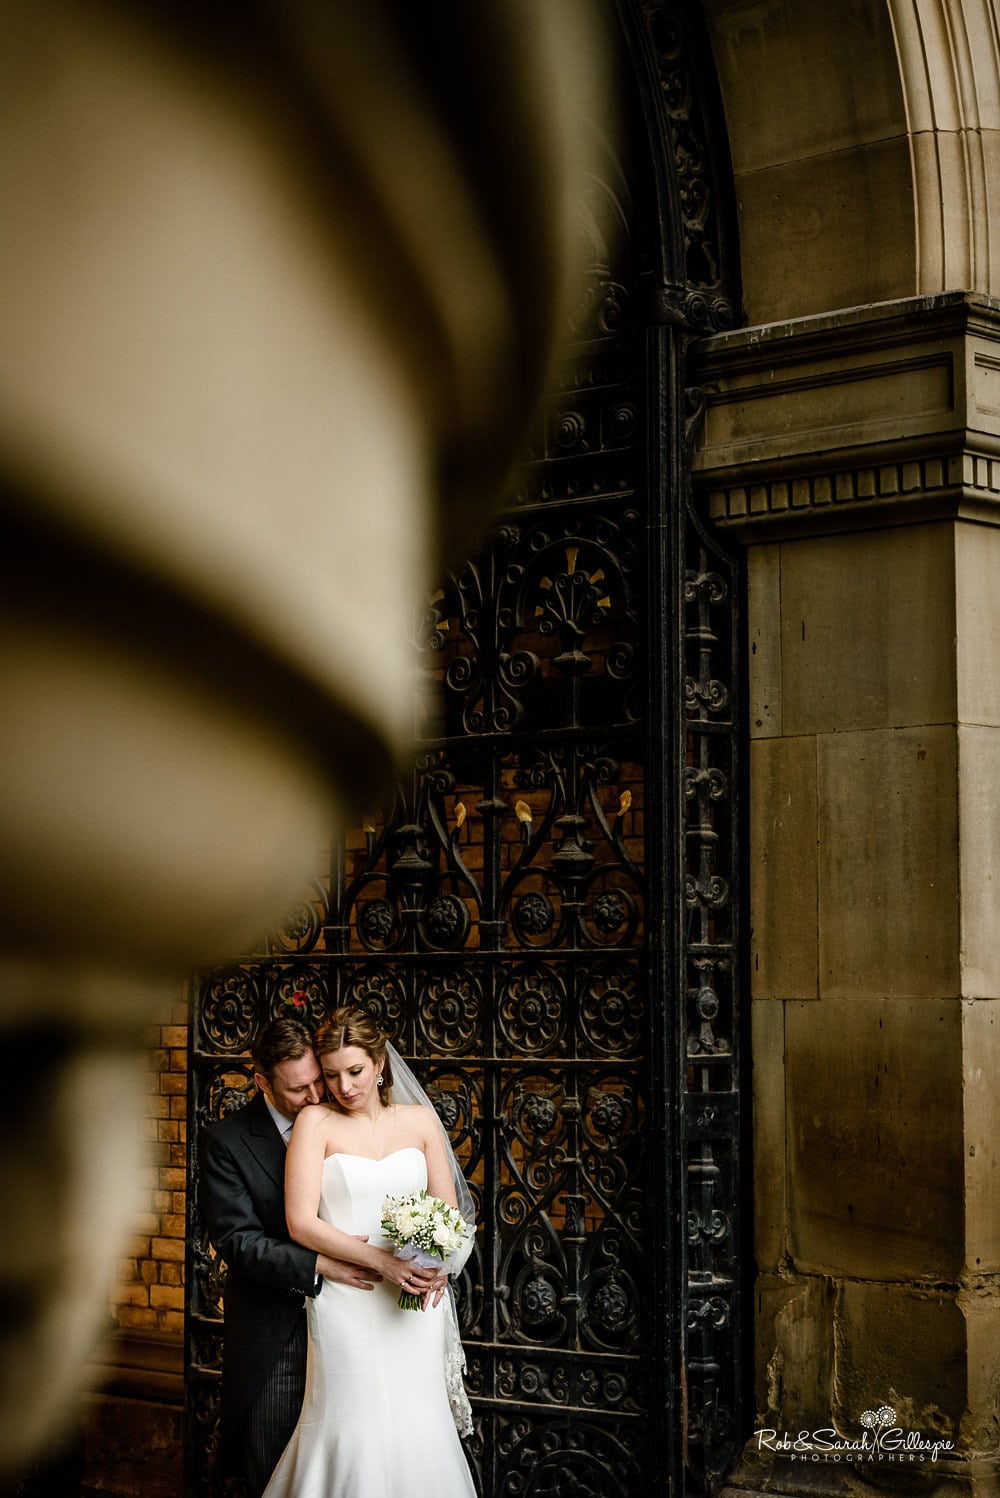 Bride and groom cuddle in front of iron gate